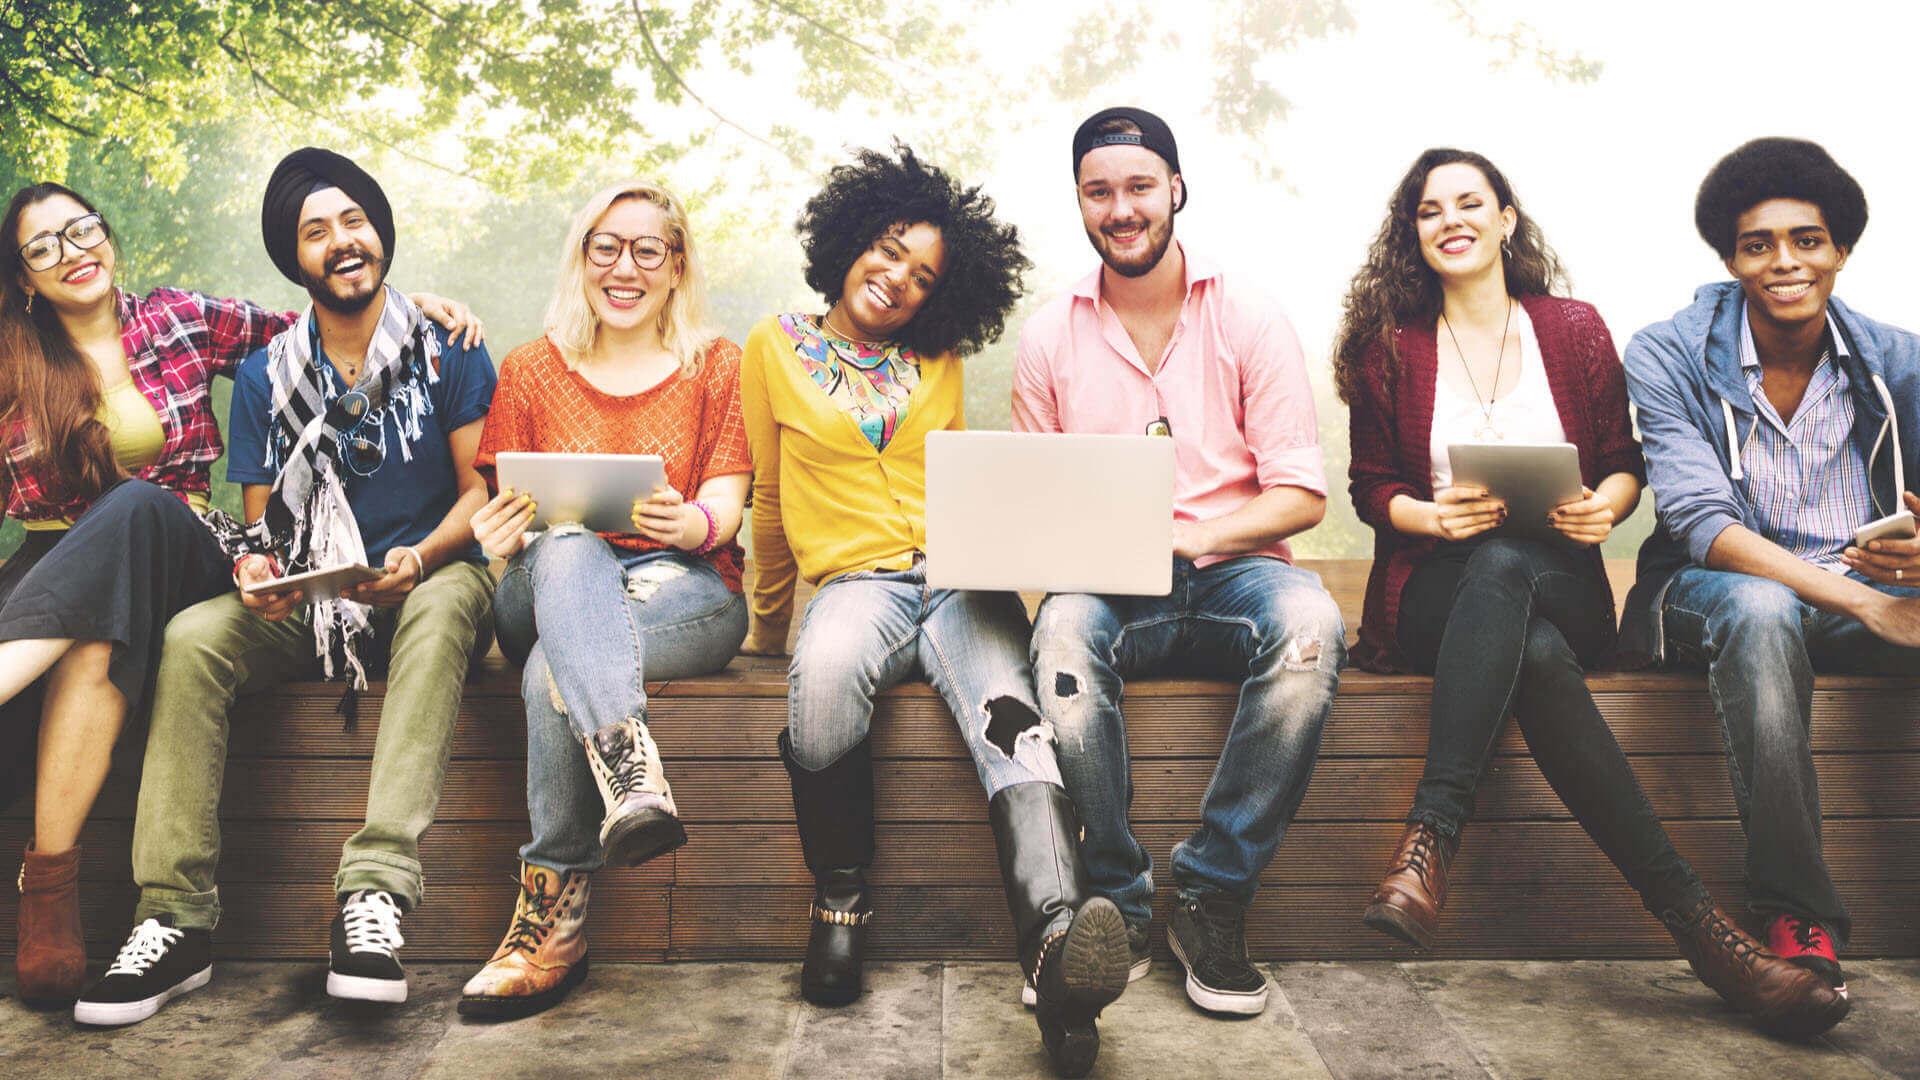 The future of search: Capturing the hearts and minds of Generation Z